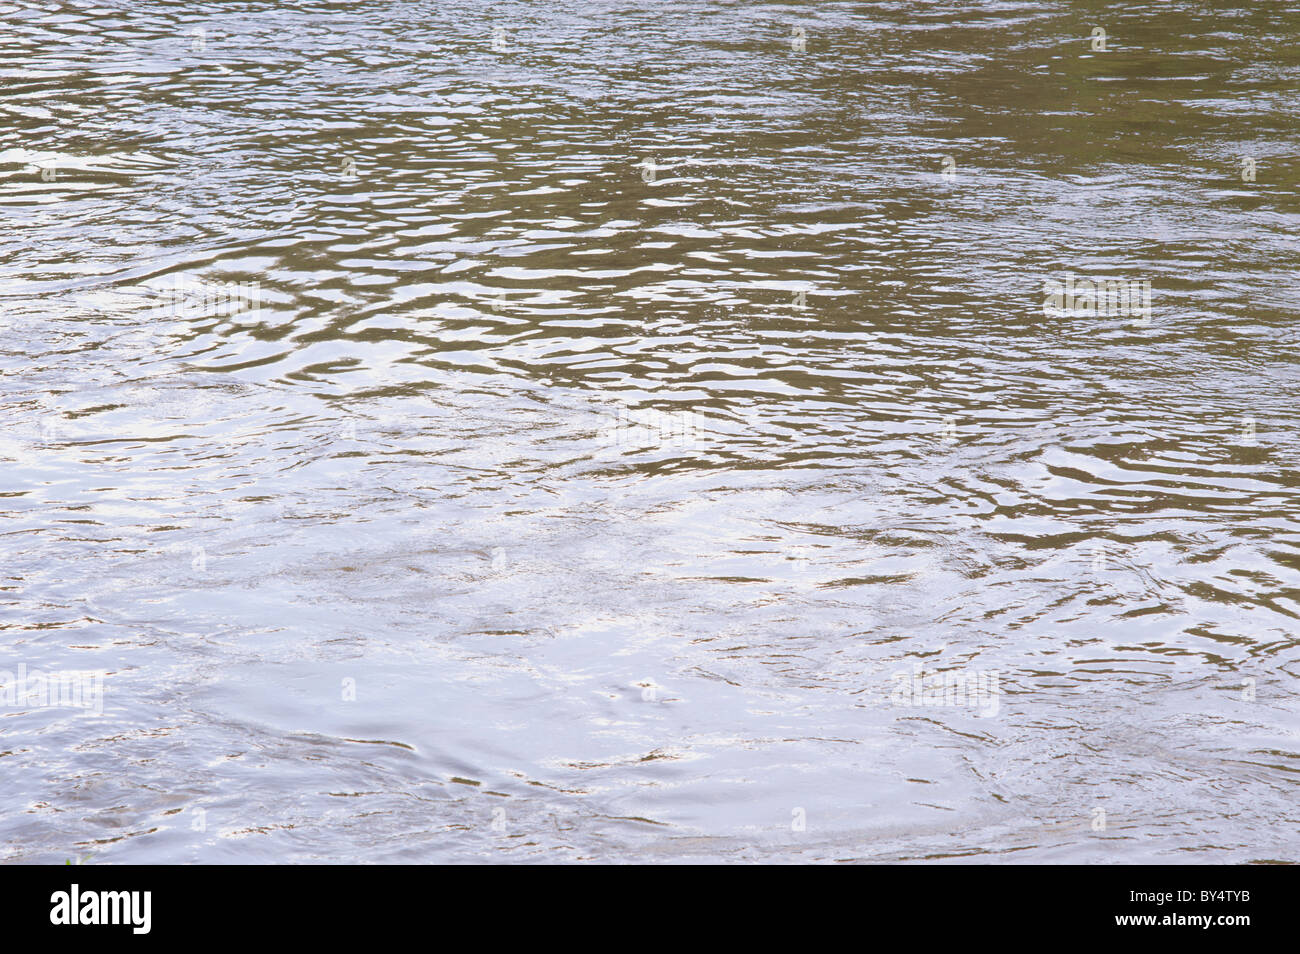 Water - River Severn at Ironbridge Gorge - Stock Image